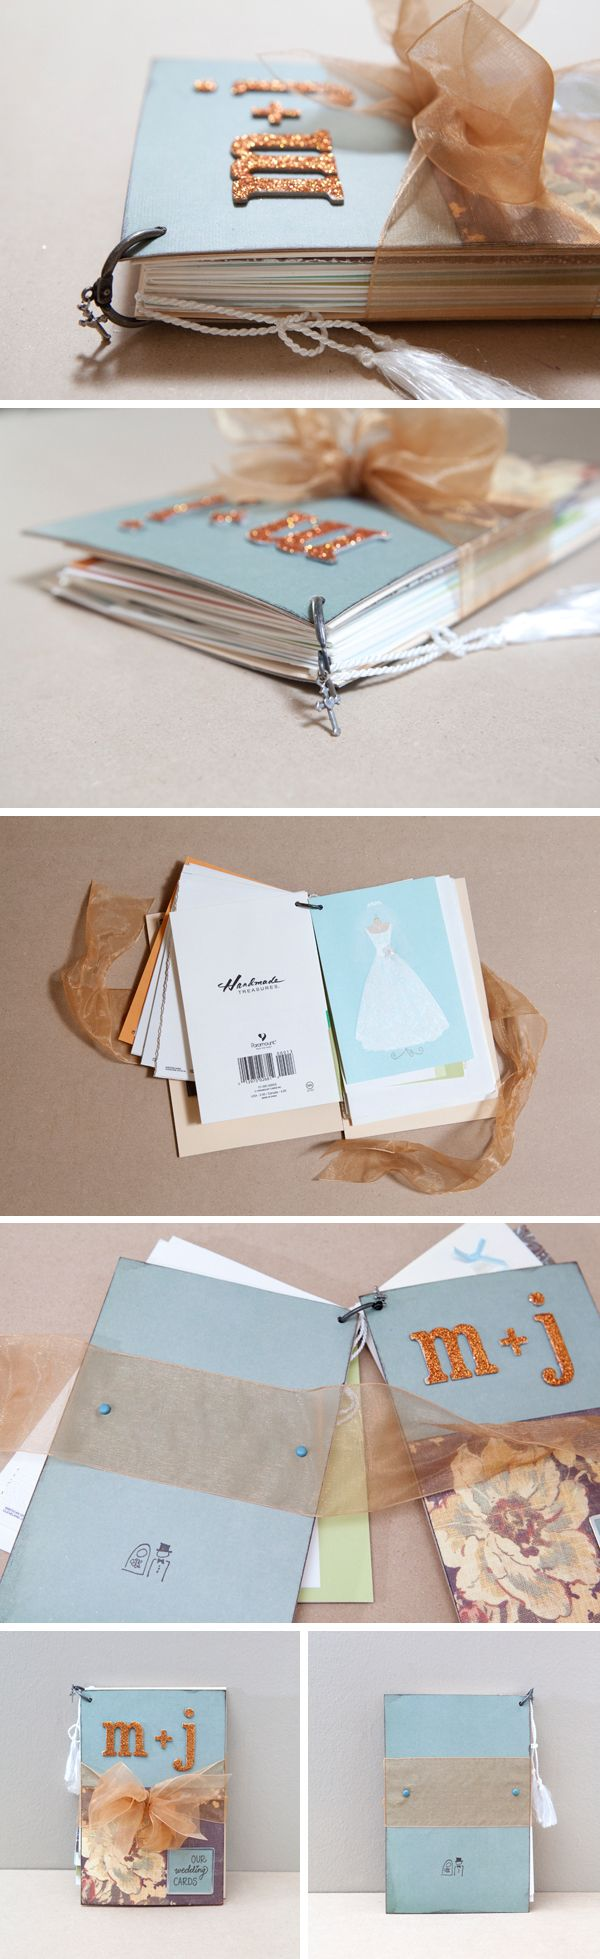 How to diy an adorable album to save special greeting cards did you get a lot of wedding cards do you want to hold on to them but want them to be organized and nicely displayed make a book out of them m4hsunfo